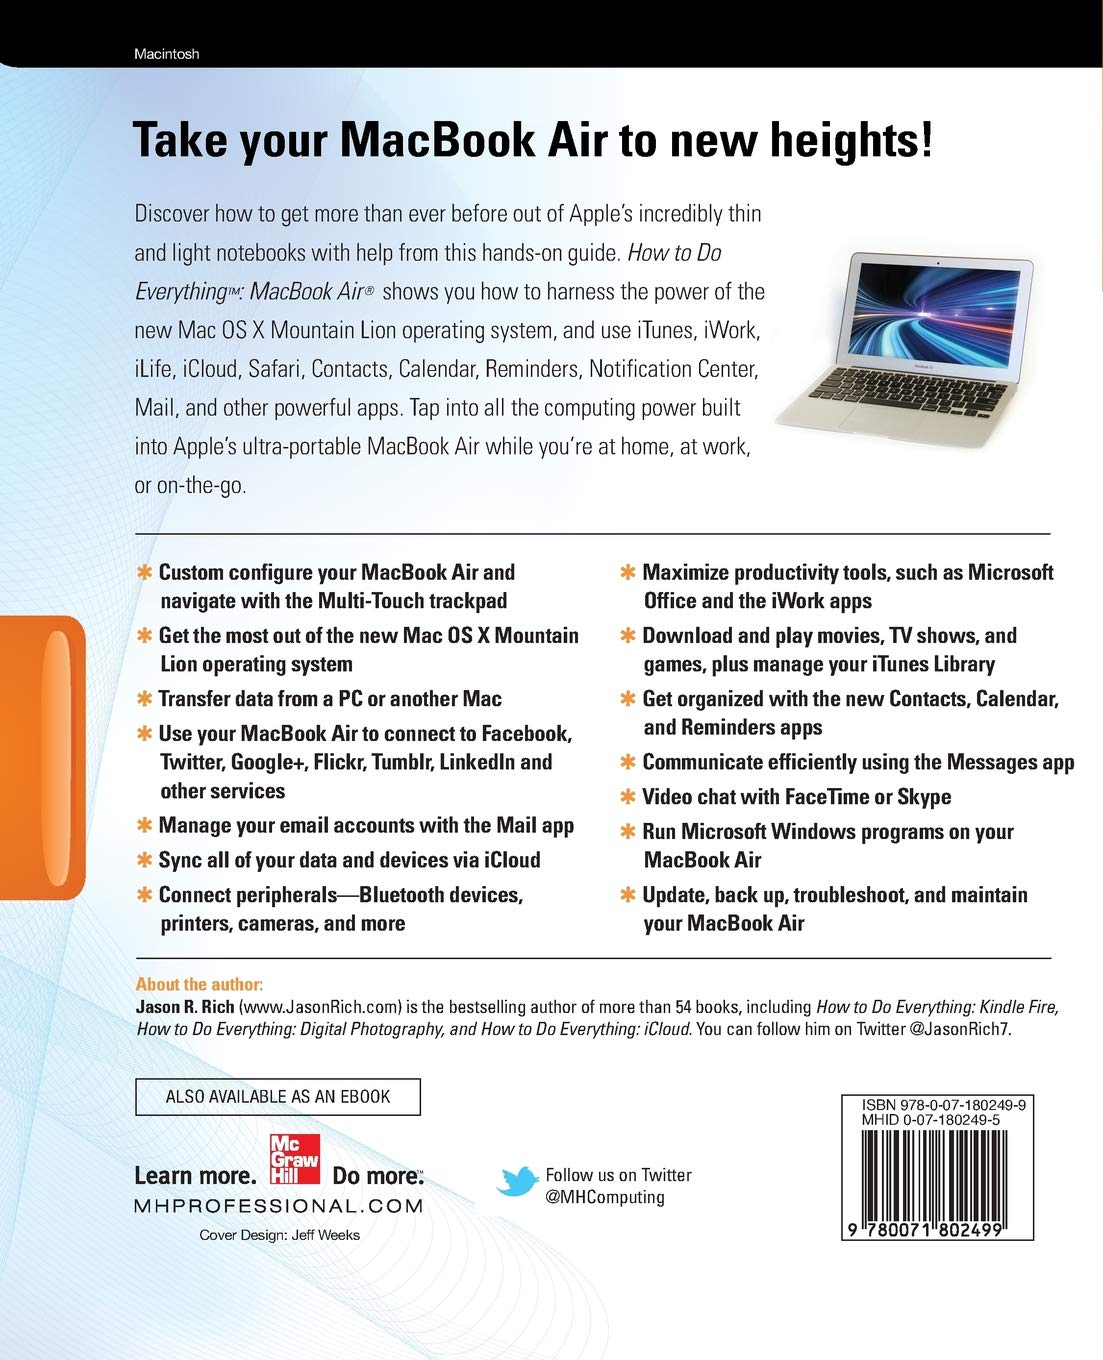 How to Do Everything MacBook Air: Amazon co uk: Jason Rich